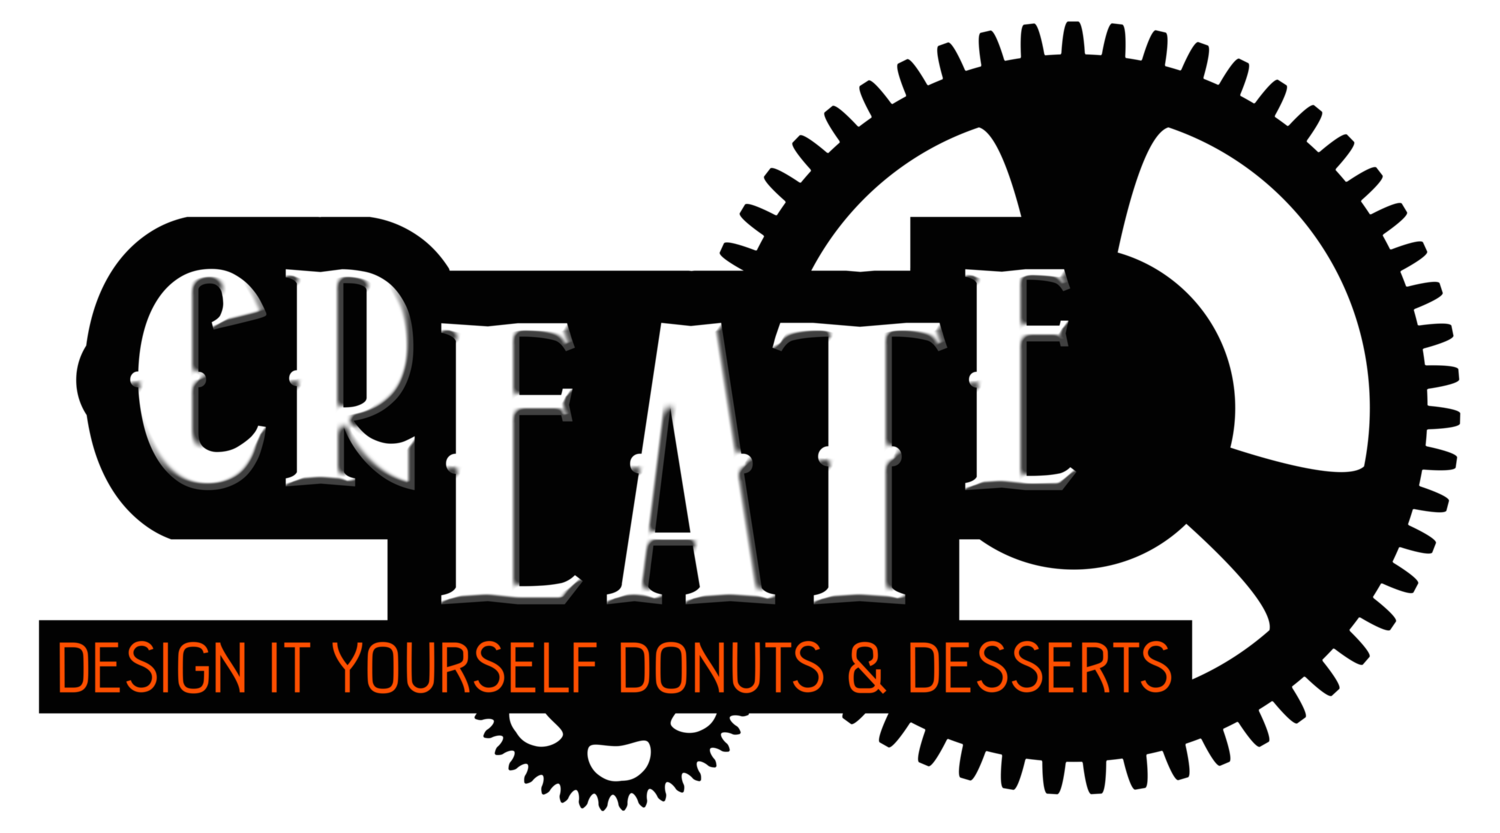 crEATe Donuts